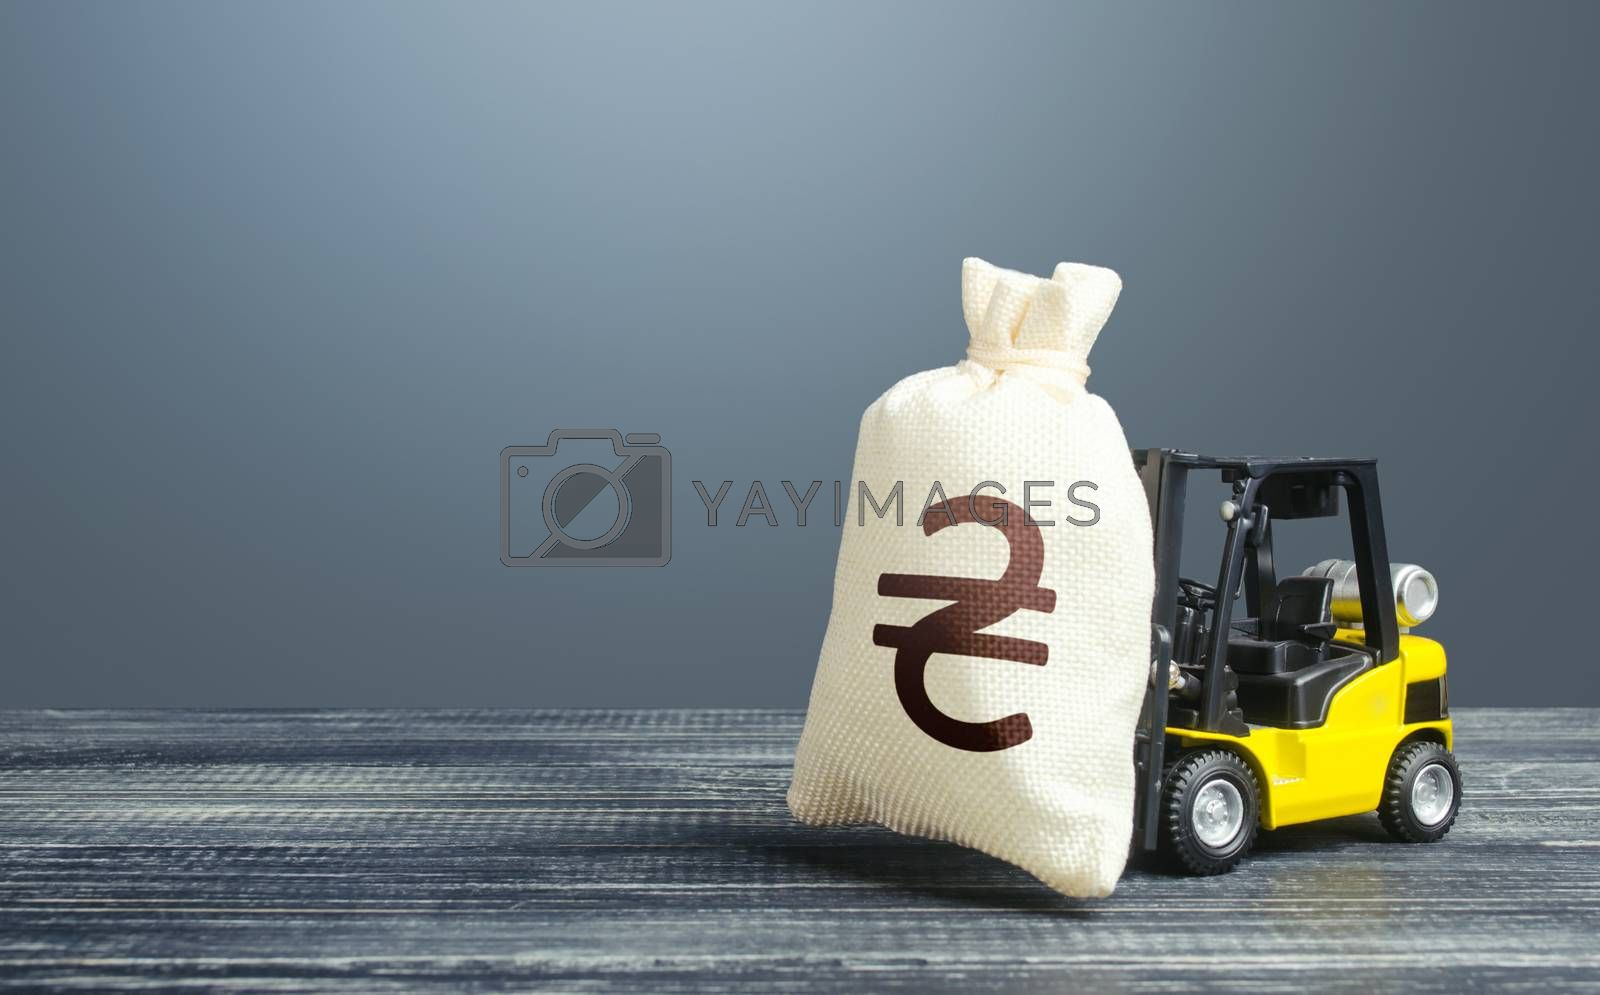 Forklift transports a ukrainian hryvnia money bag. Investing in economy. Economic support, lending. Crisis recovery measures. Borrowing on capital market. High debt load. Corruption